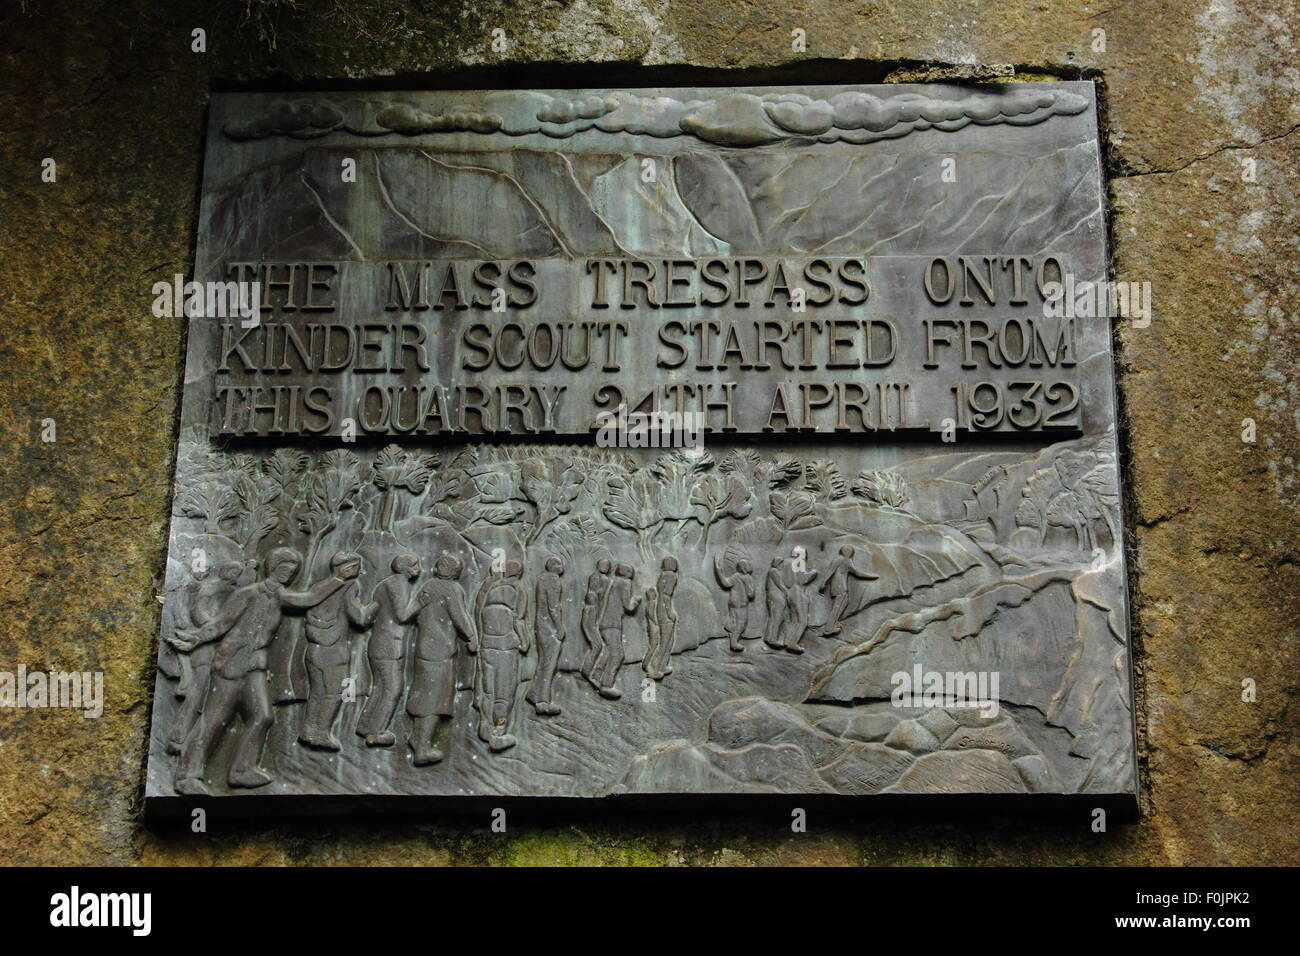 A  commemorative plaque near Kinder Scout marks where the mass trespass of 1932 started, Peak District England UK - Stock Image